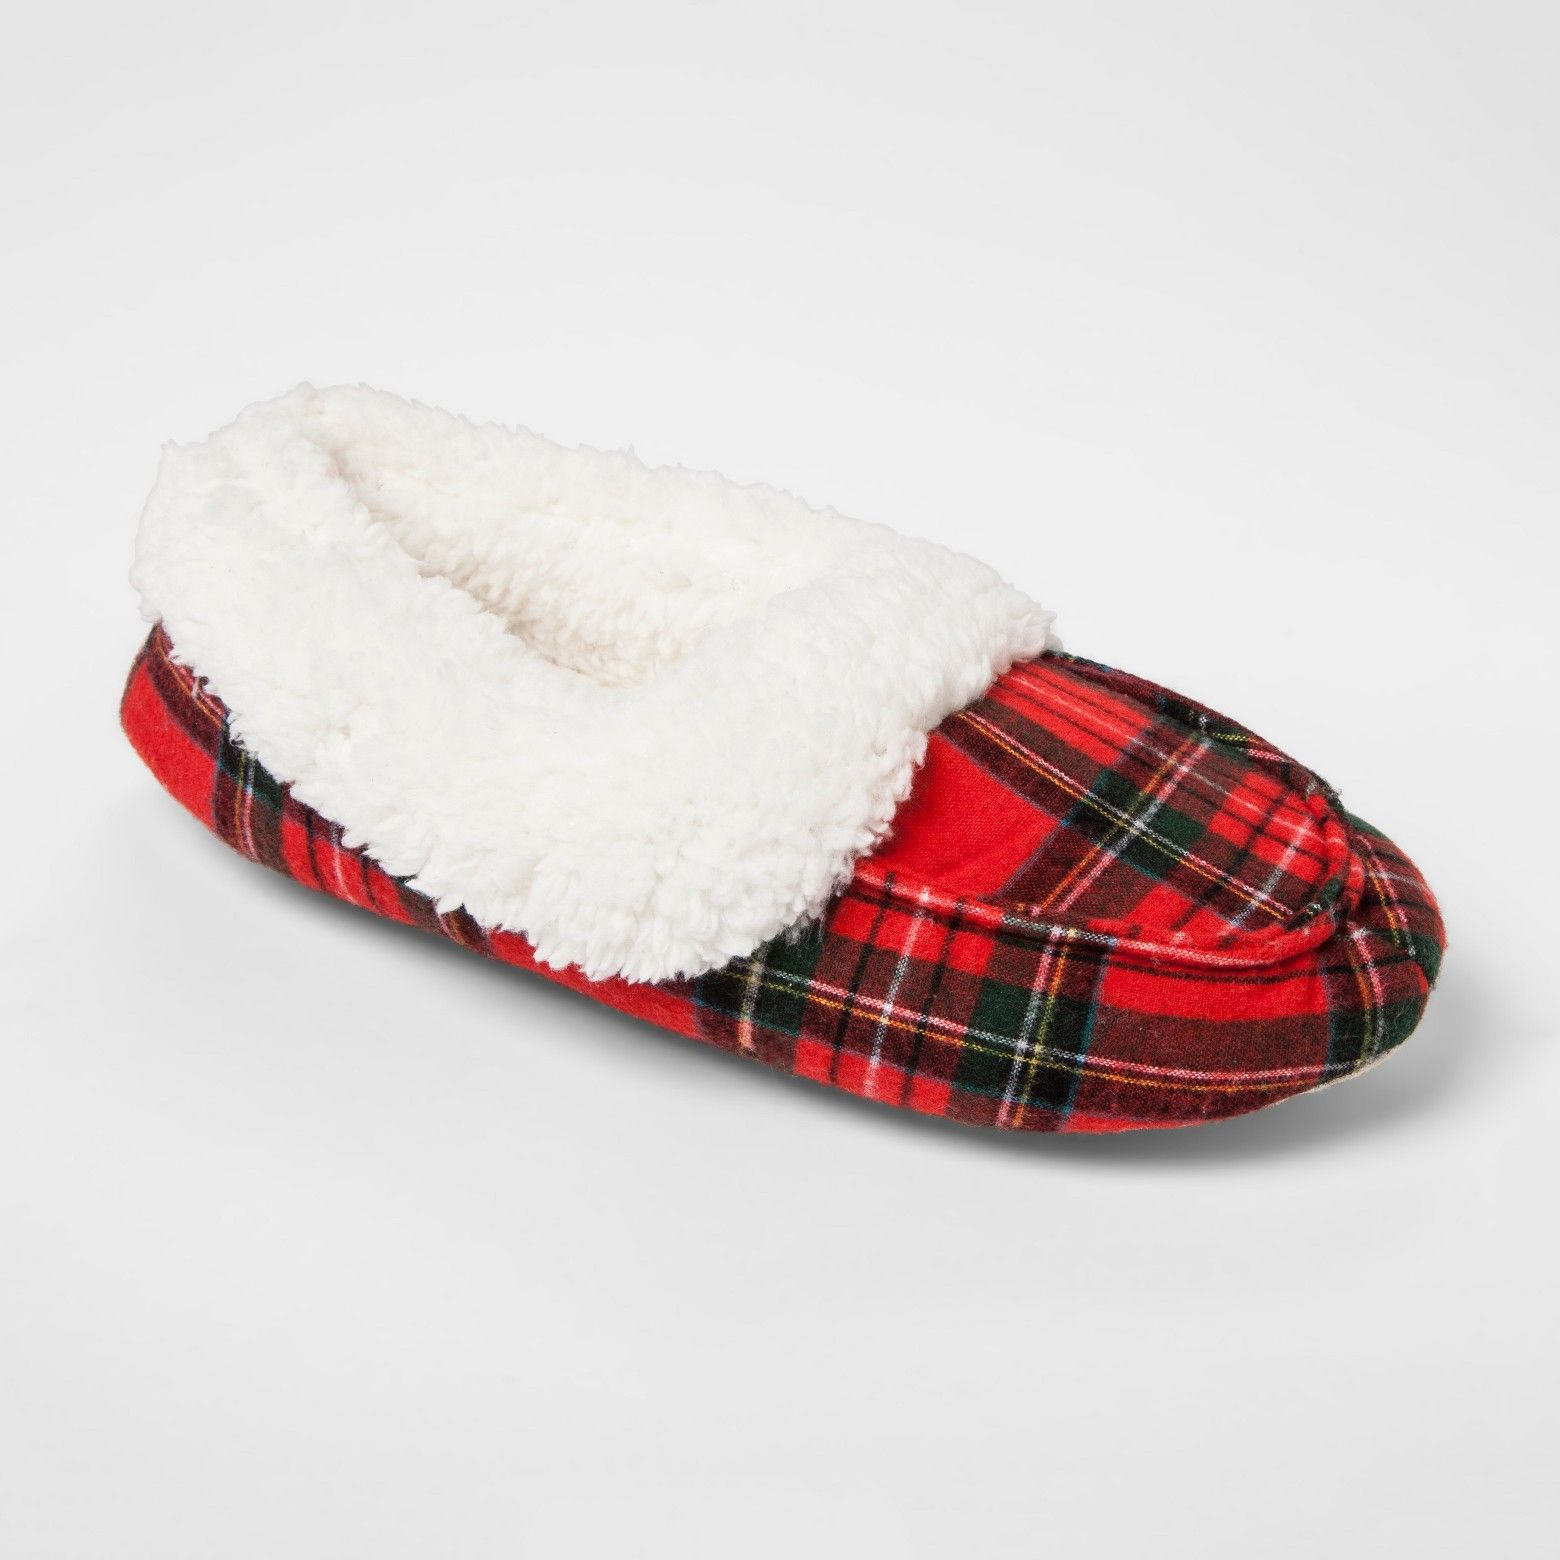 Holiday Plaid Moccasin Slippers From Wondershop Give Your